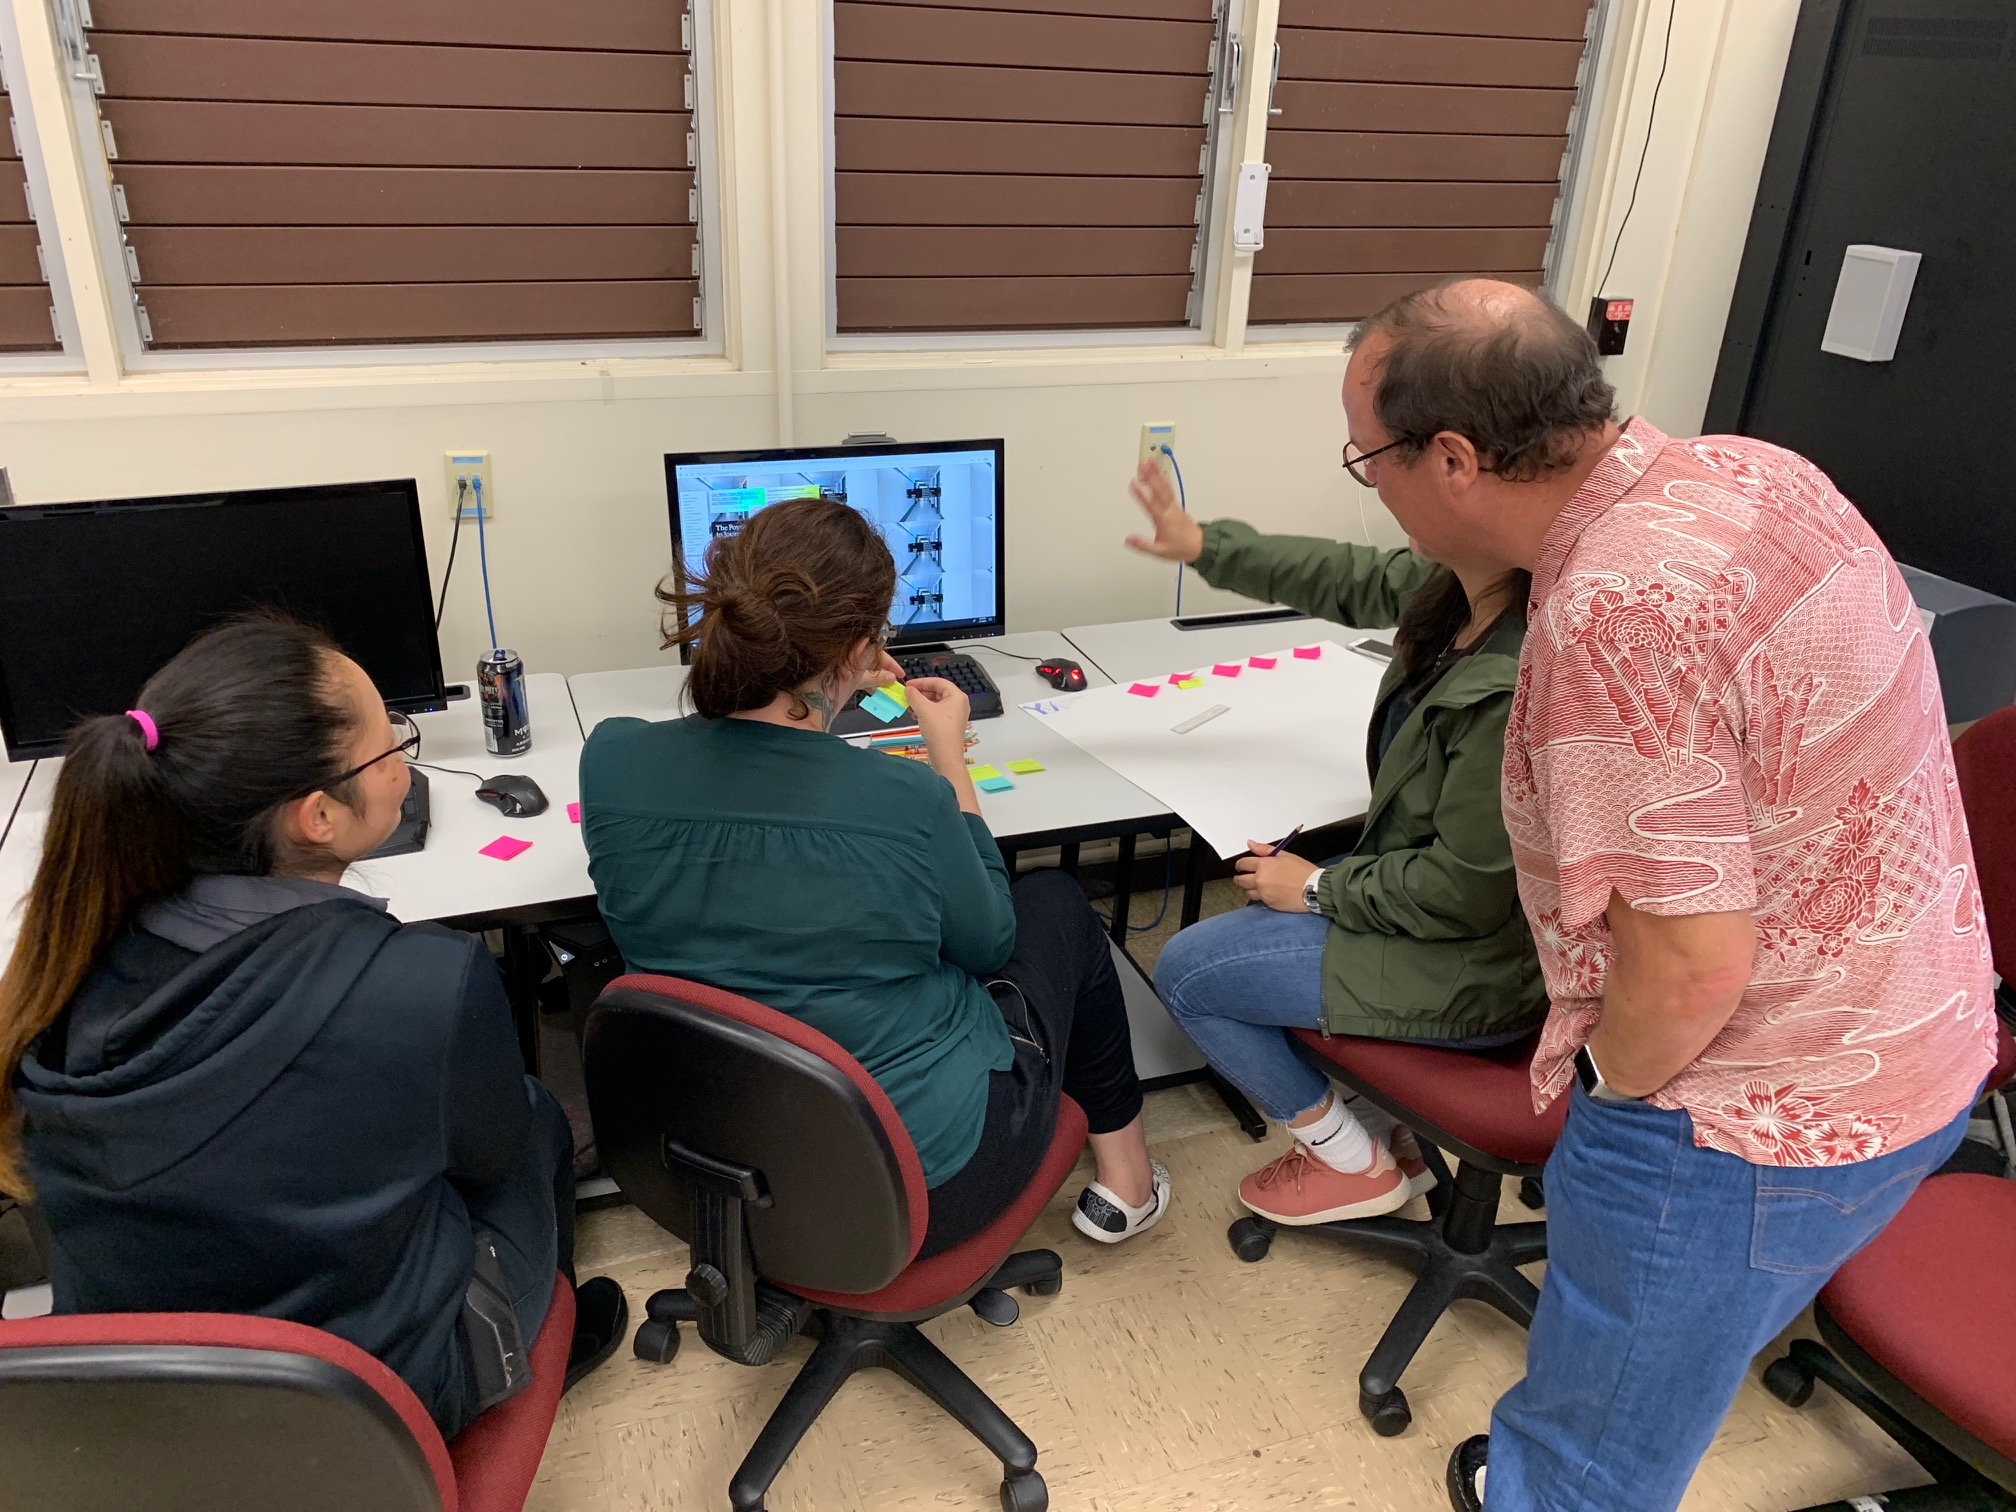 Students at computers with prof. talking to them.